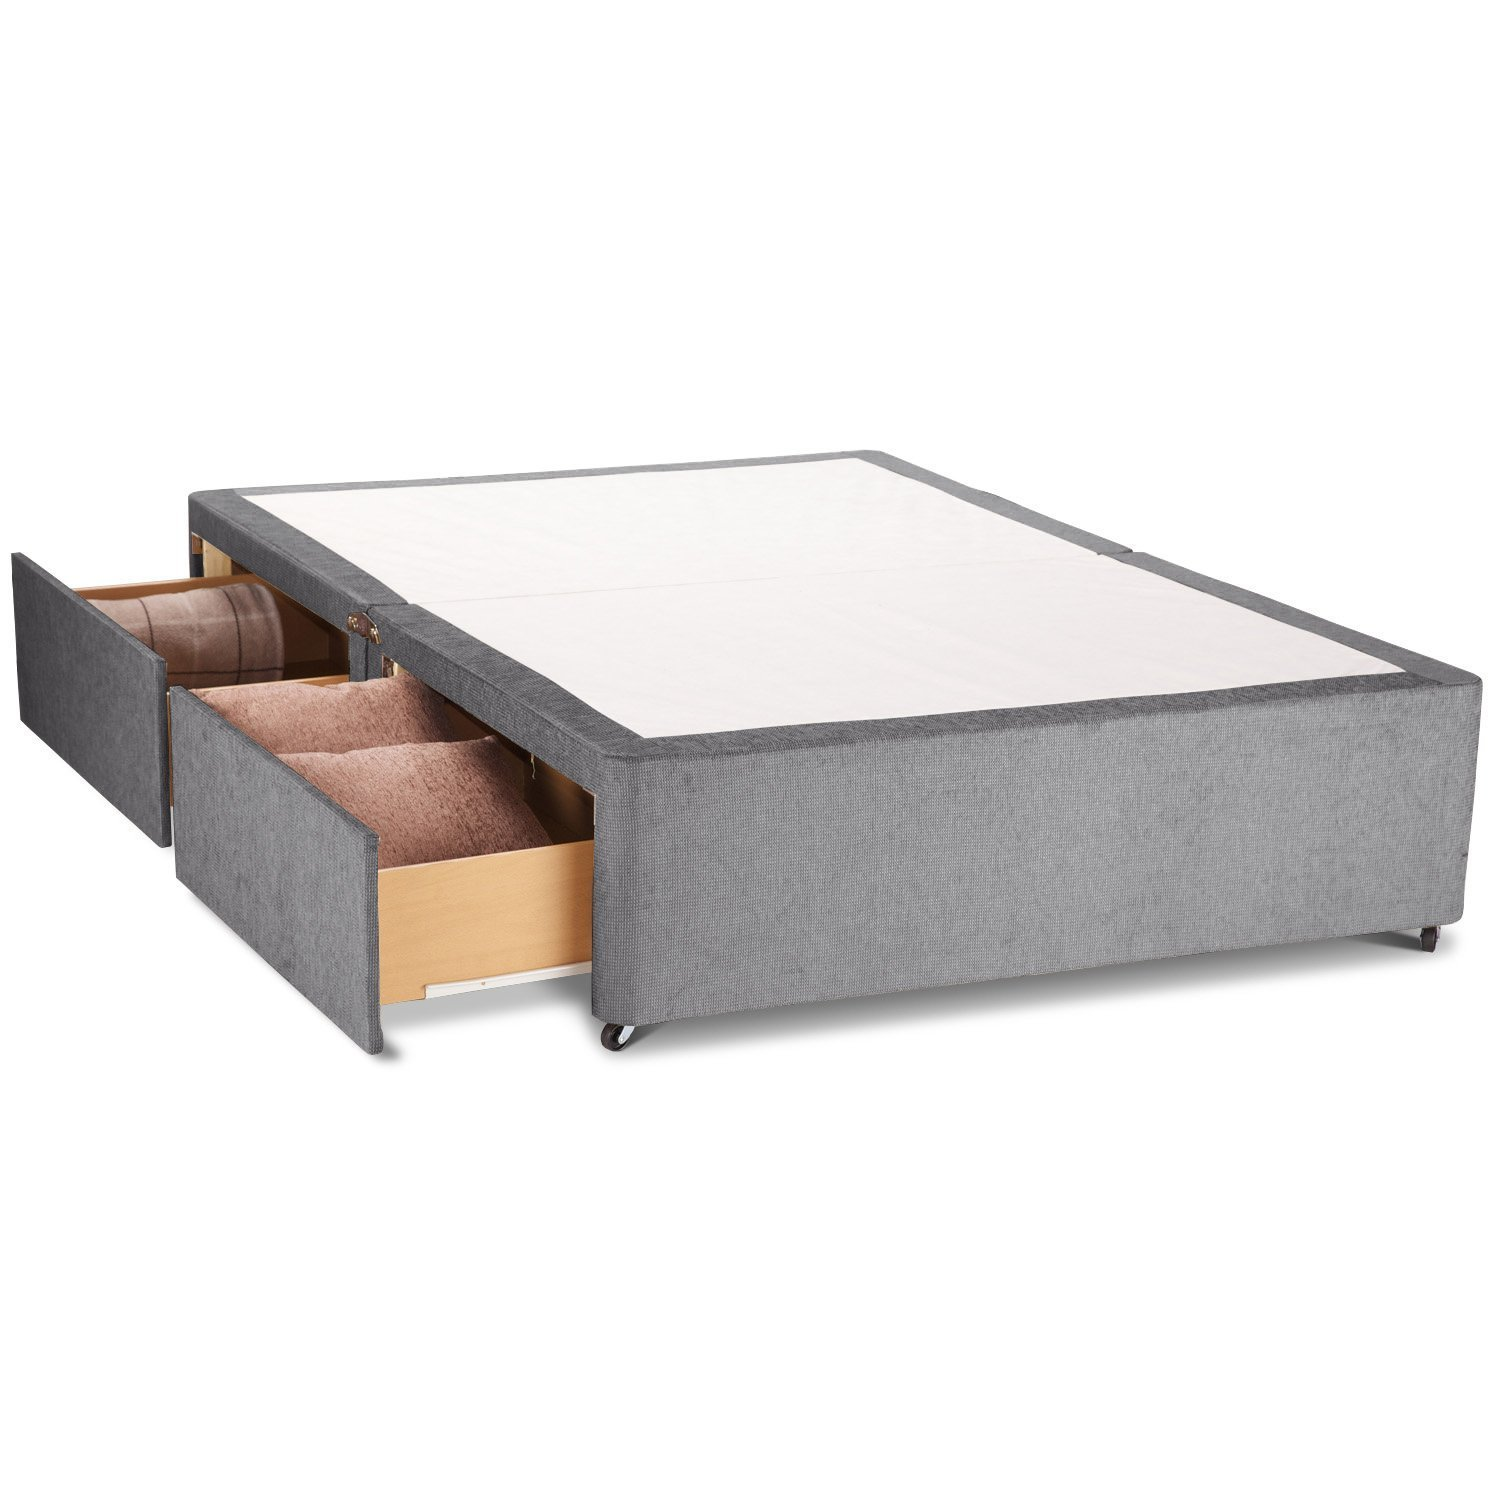 drawers solutions storage bed white with design base oltretorante great